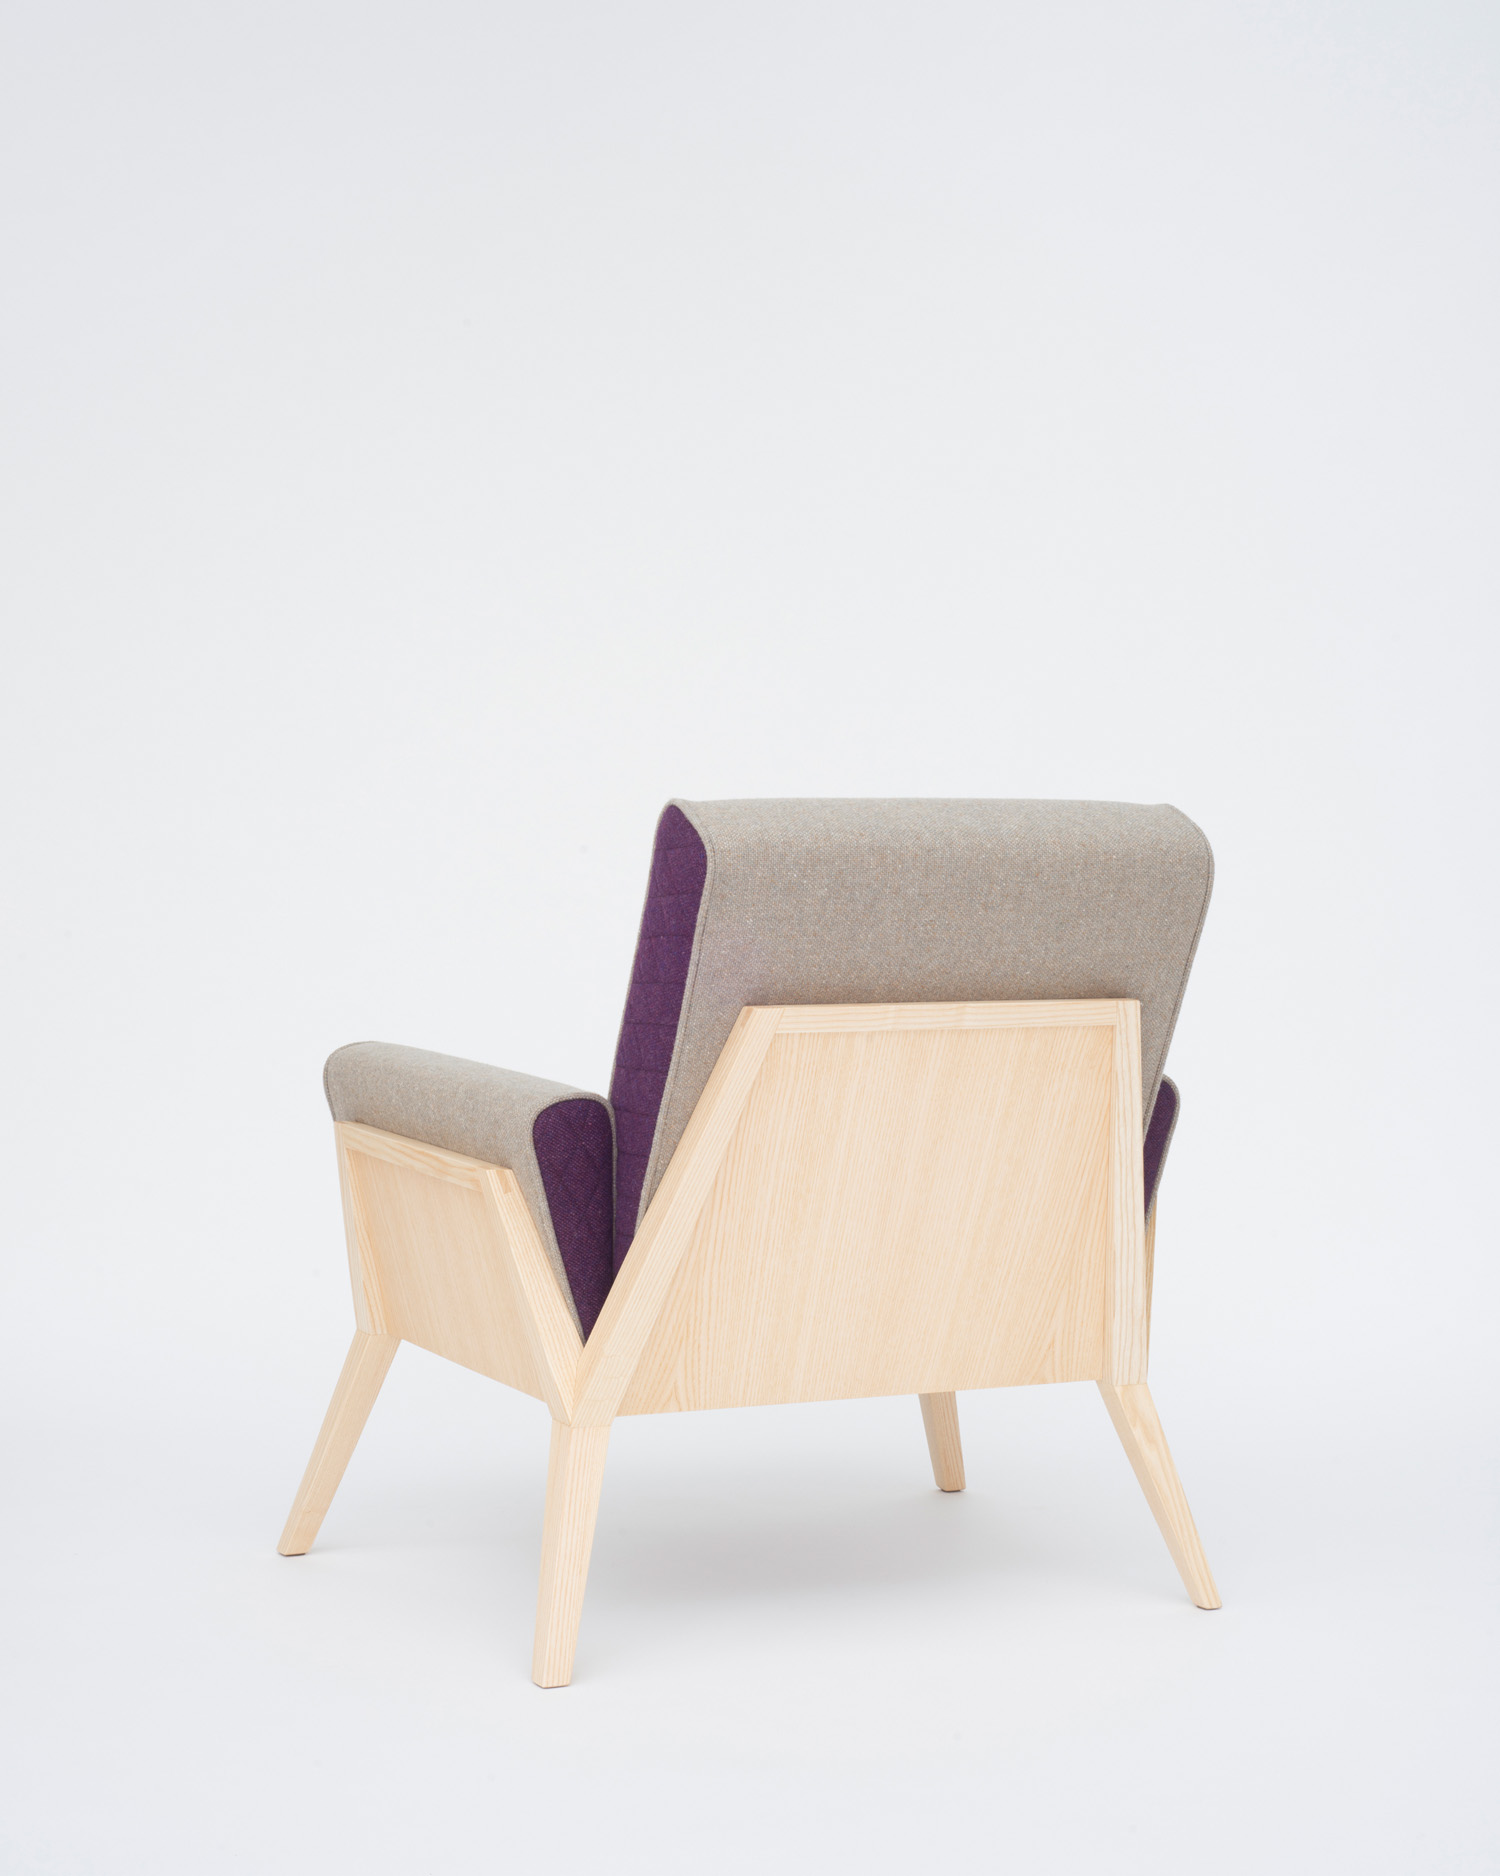 Æsh & Tweed armchair, Photo Justin Barton